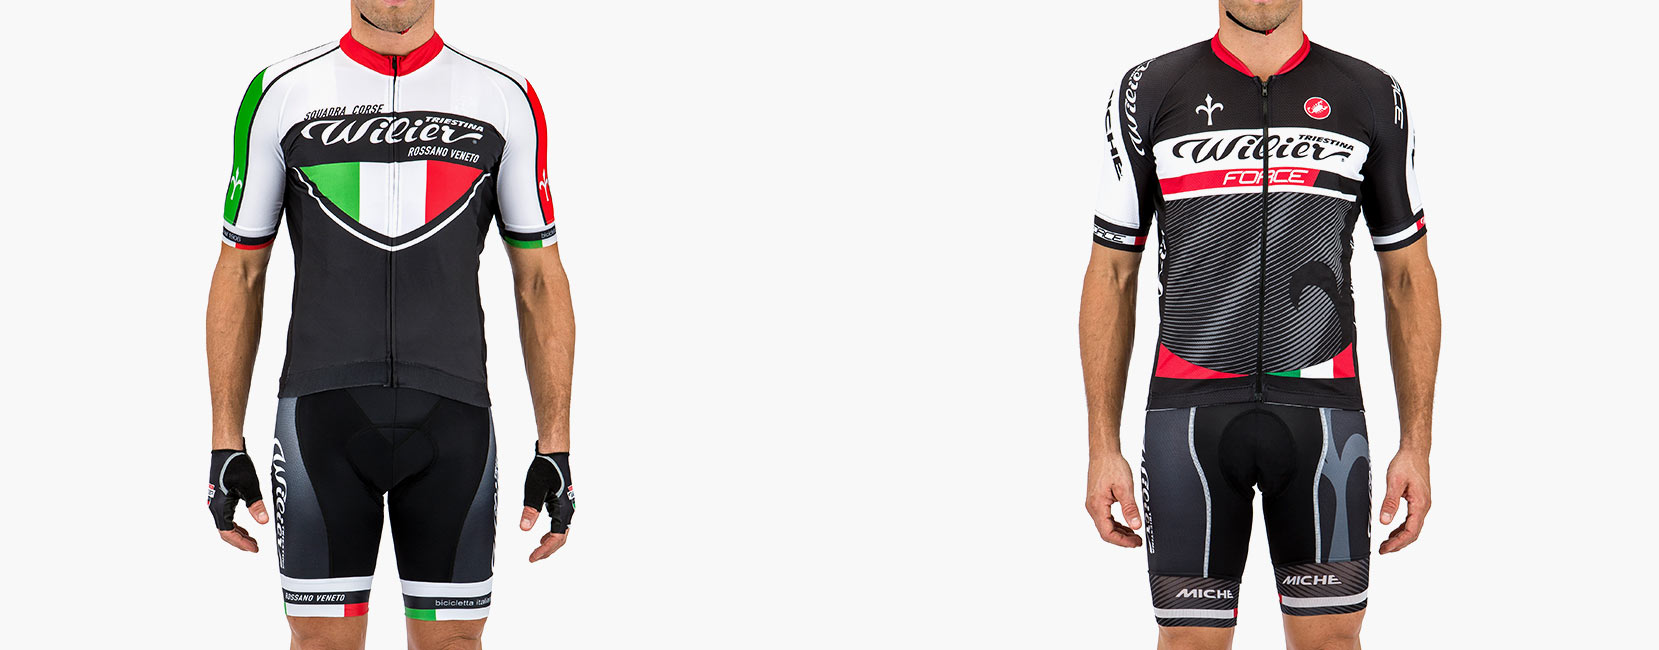 Wilier 2015 – Clothing